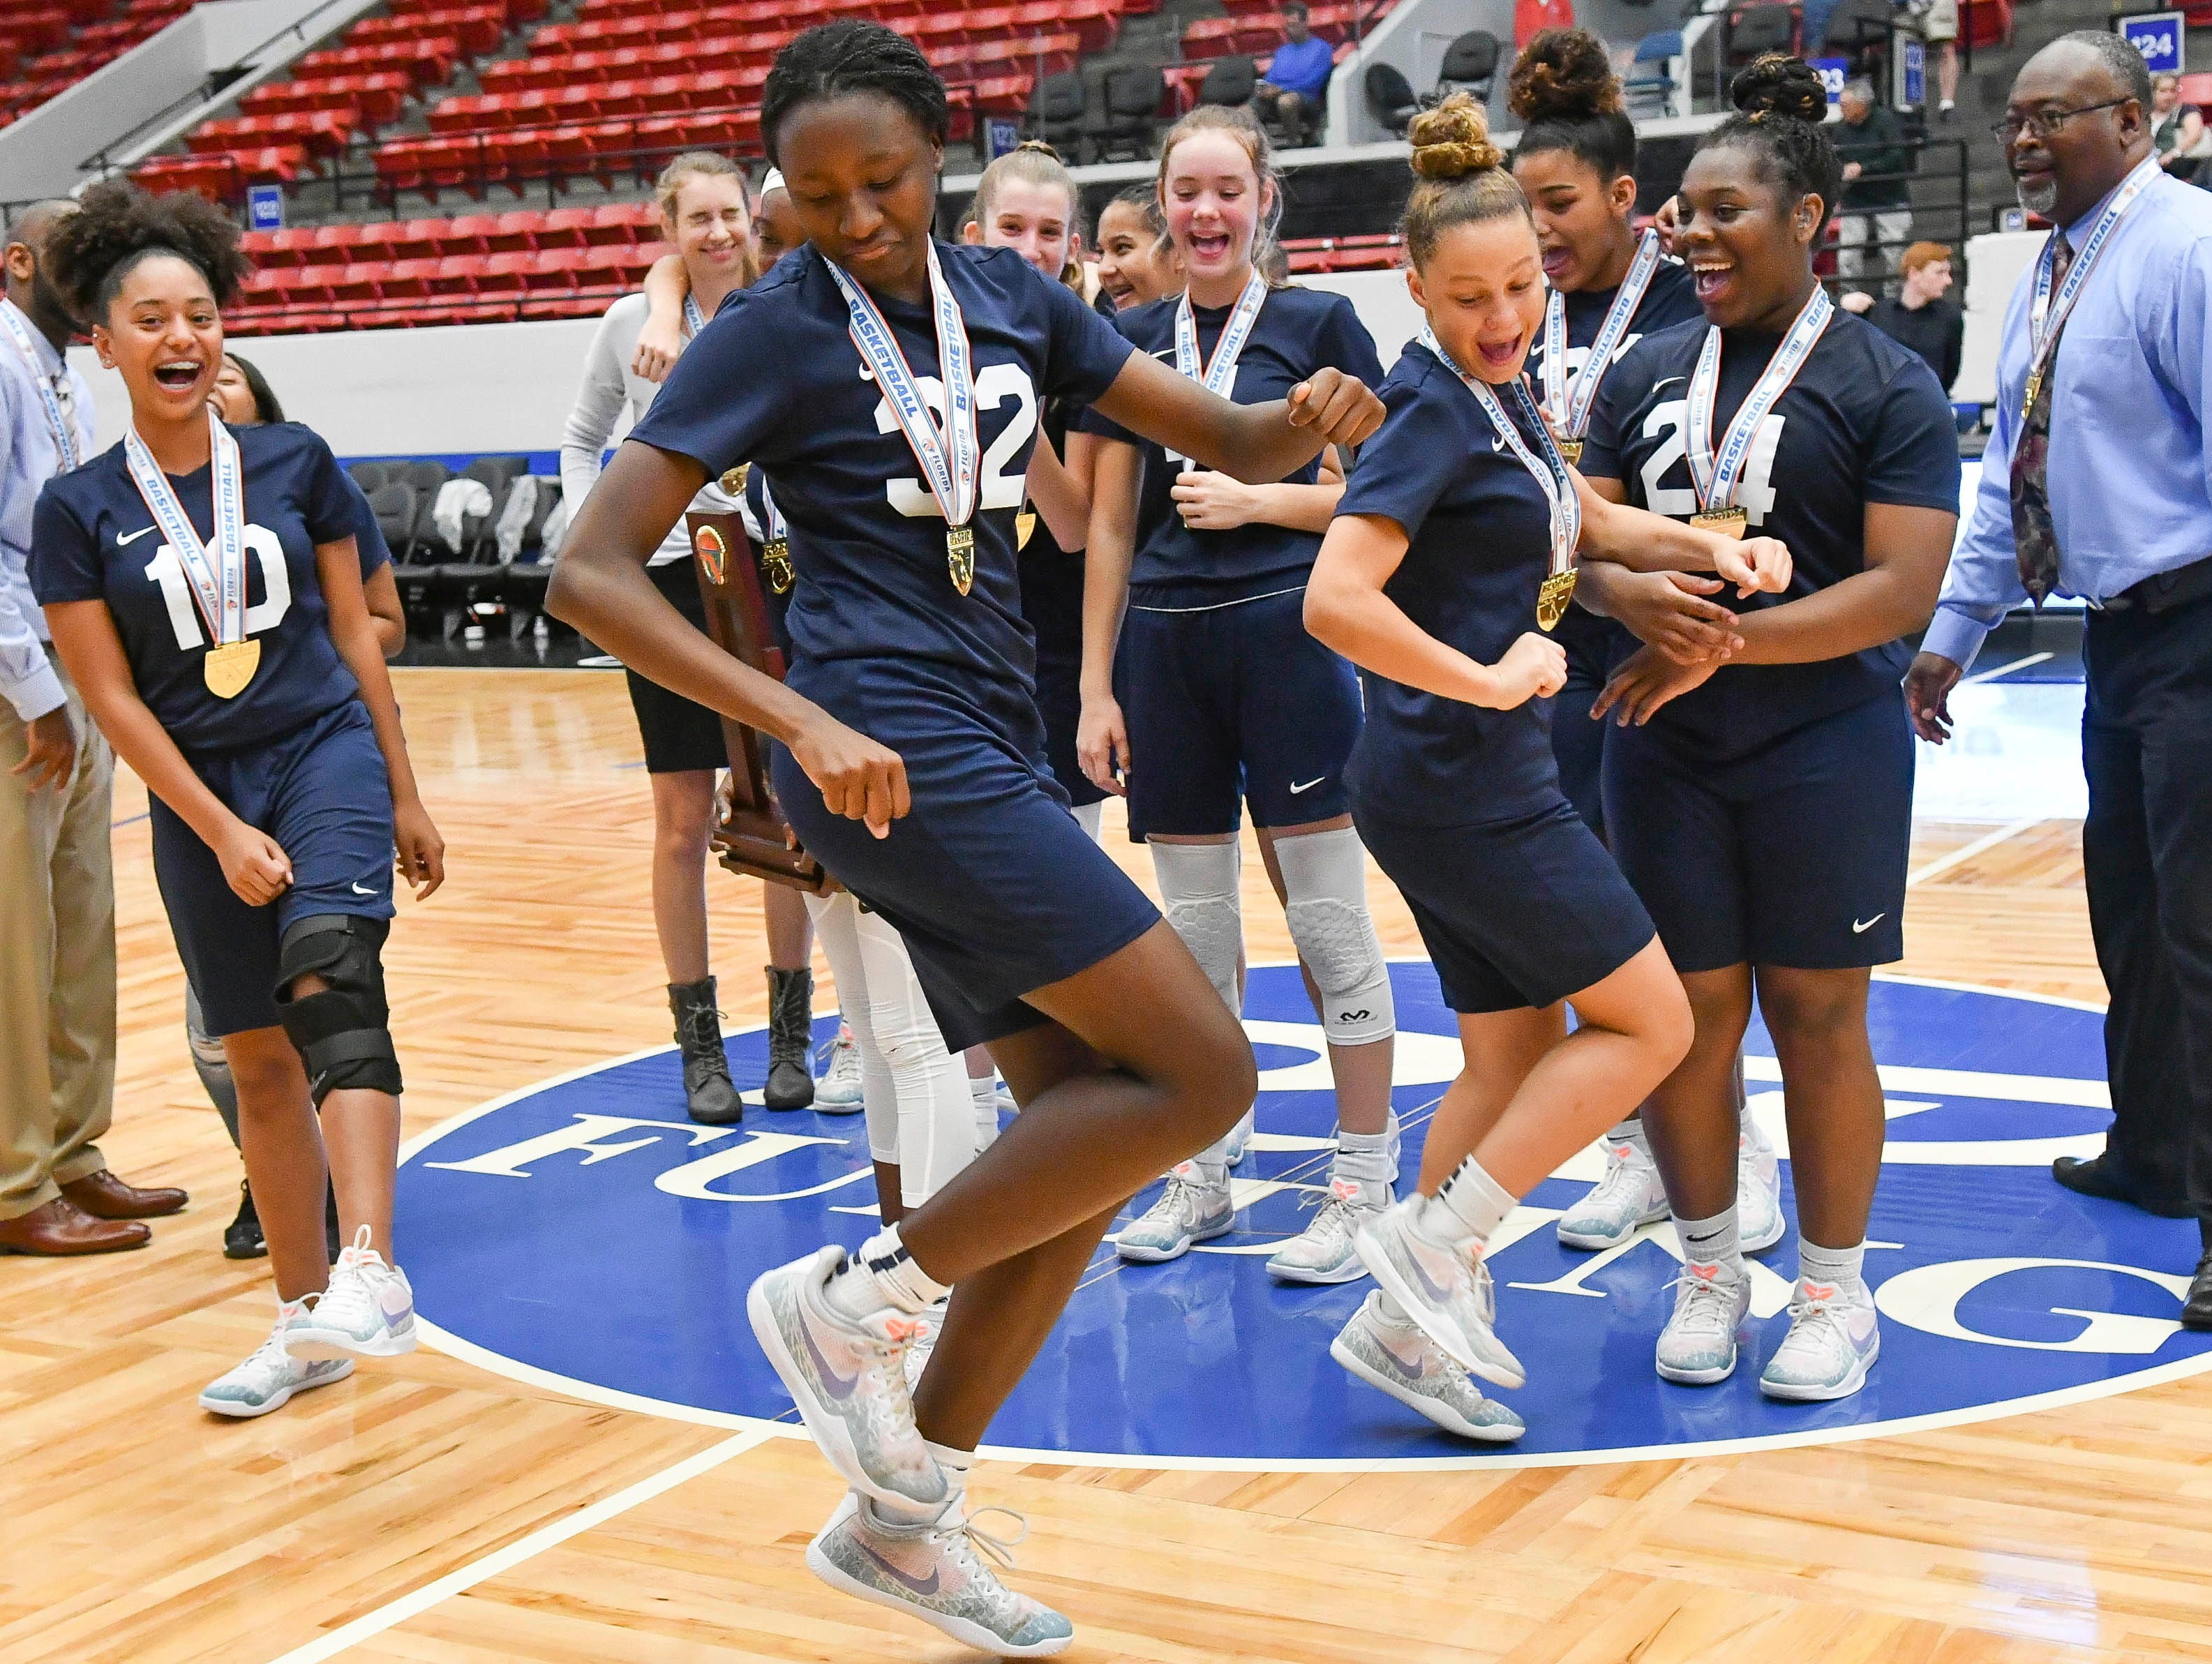 Paige McDonald (32) and the Florida Prep Falcons celebrate their victory in Tuesday's Class 2A state championship game.